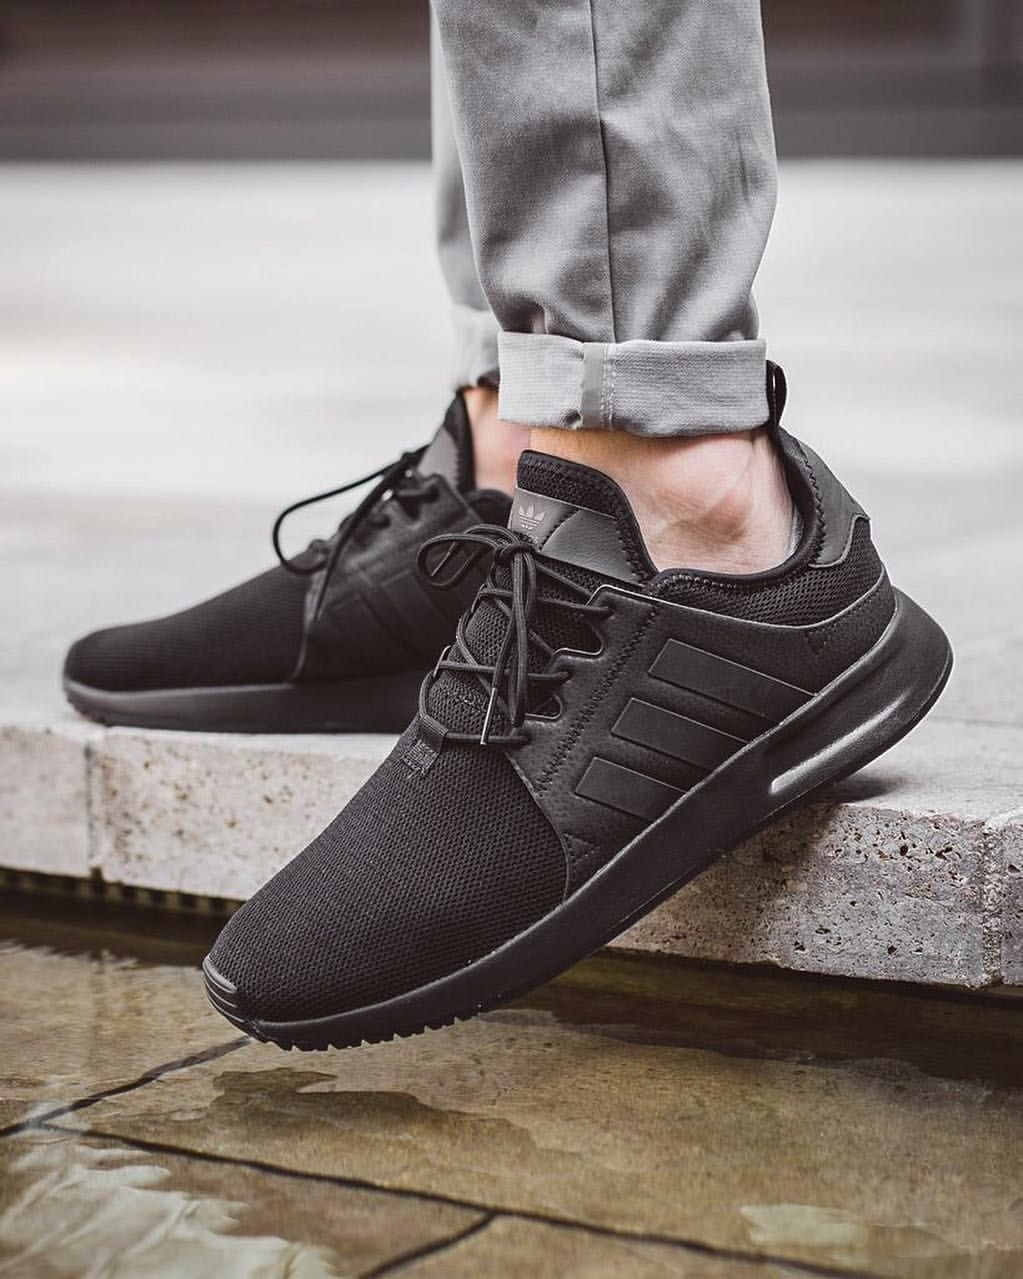 Adidas Originals x PLR Amazing zapatos Pinterest adidas